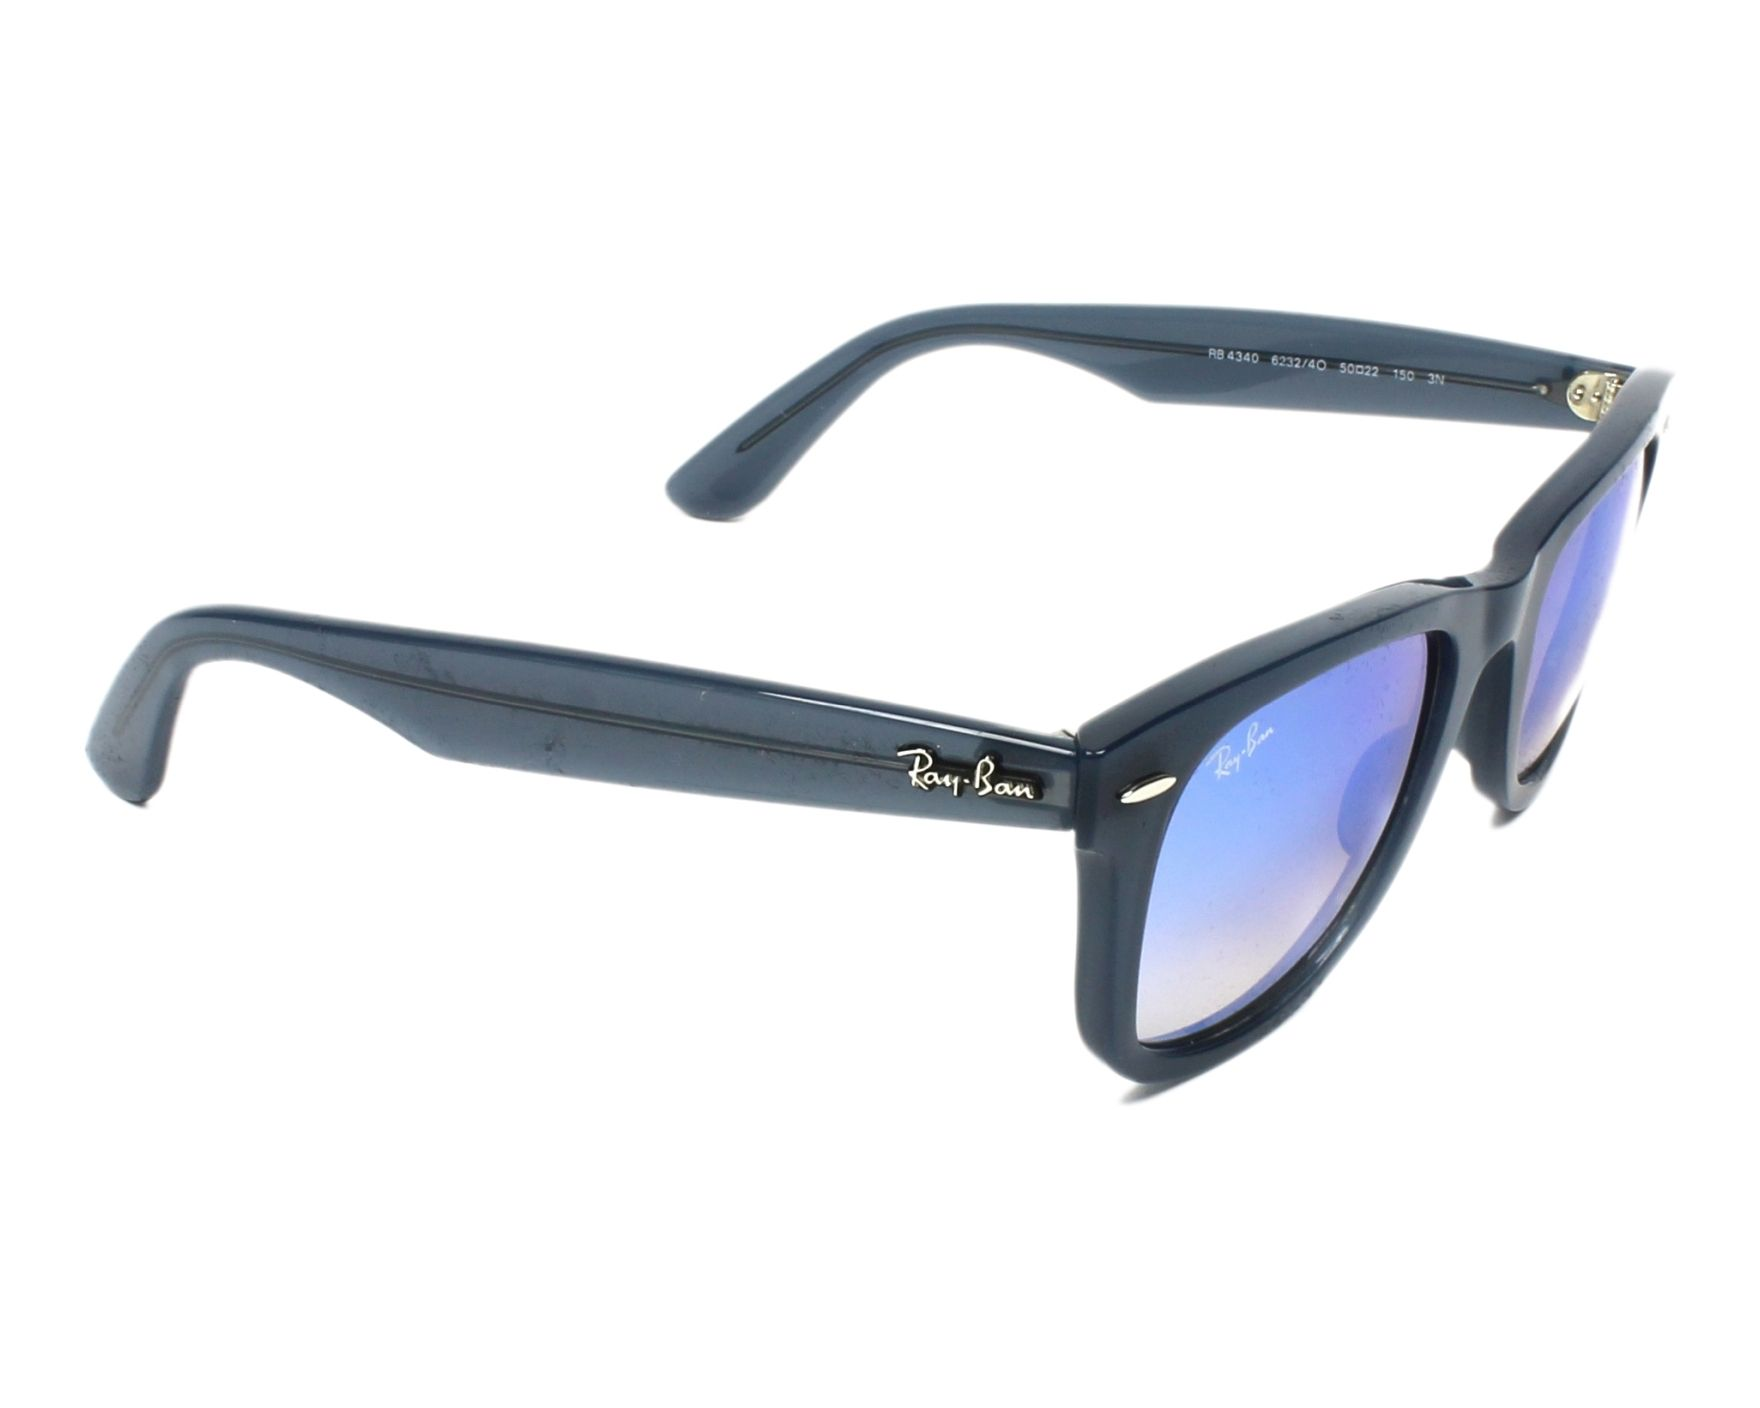 110e185c5c Sunglasses Ray-Ban RB-4340 62324O - Blue side view